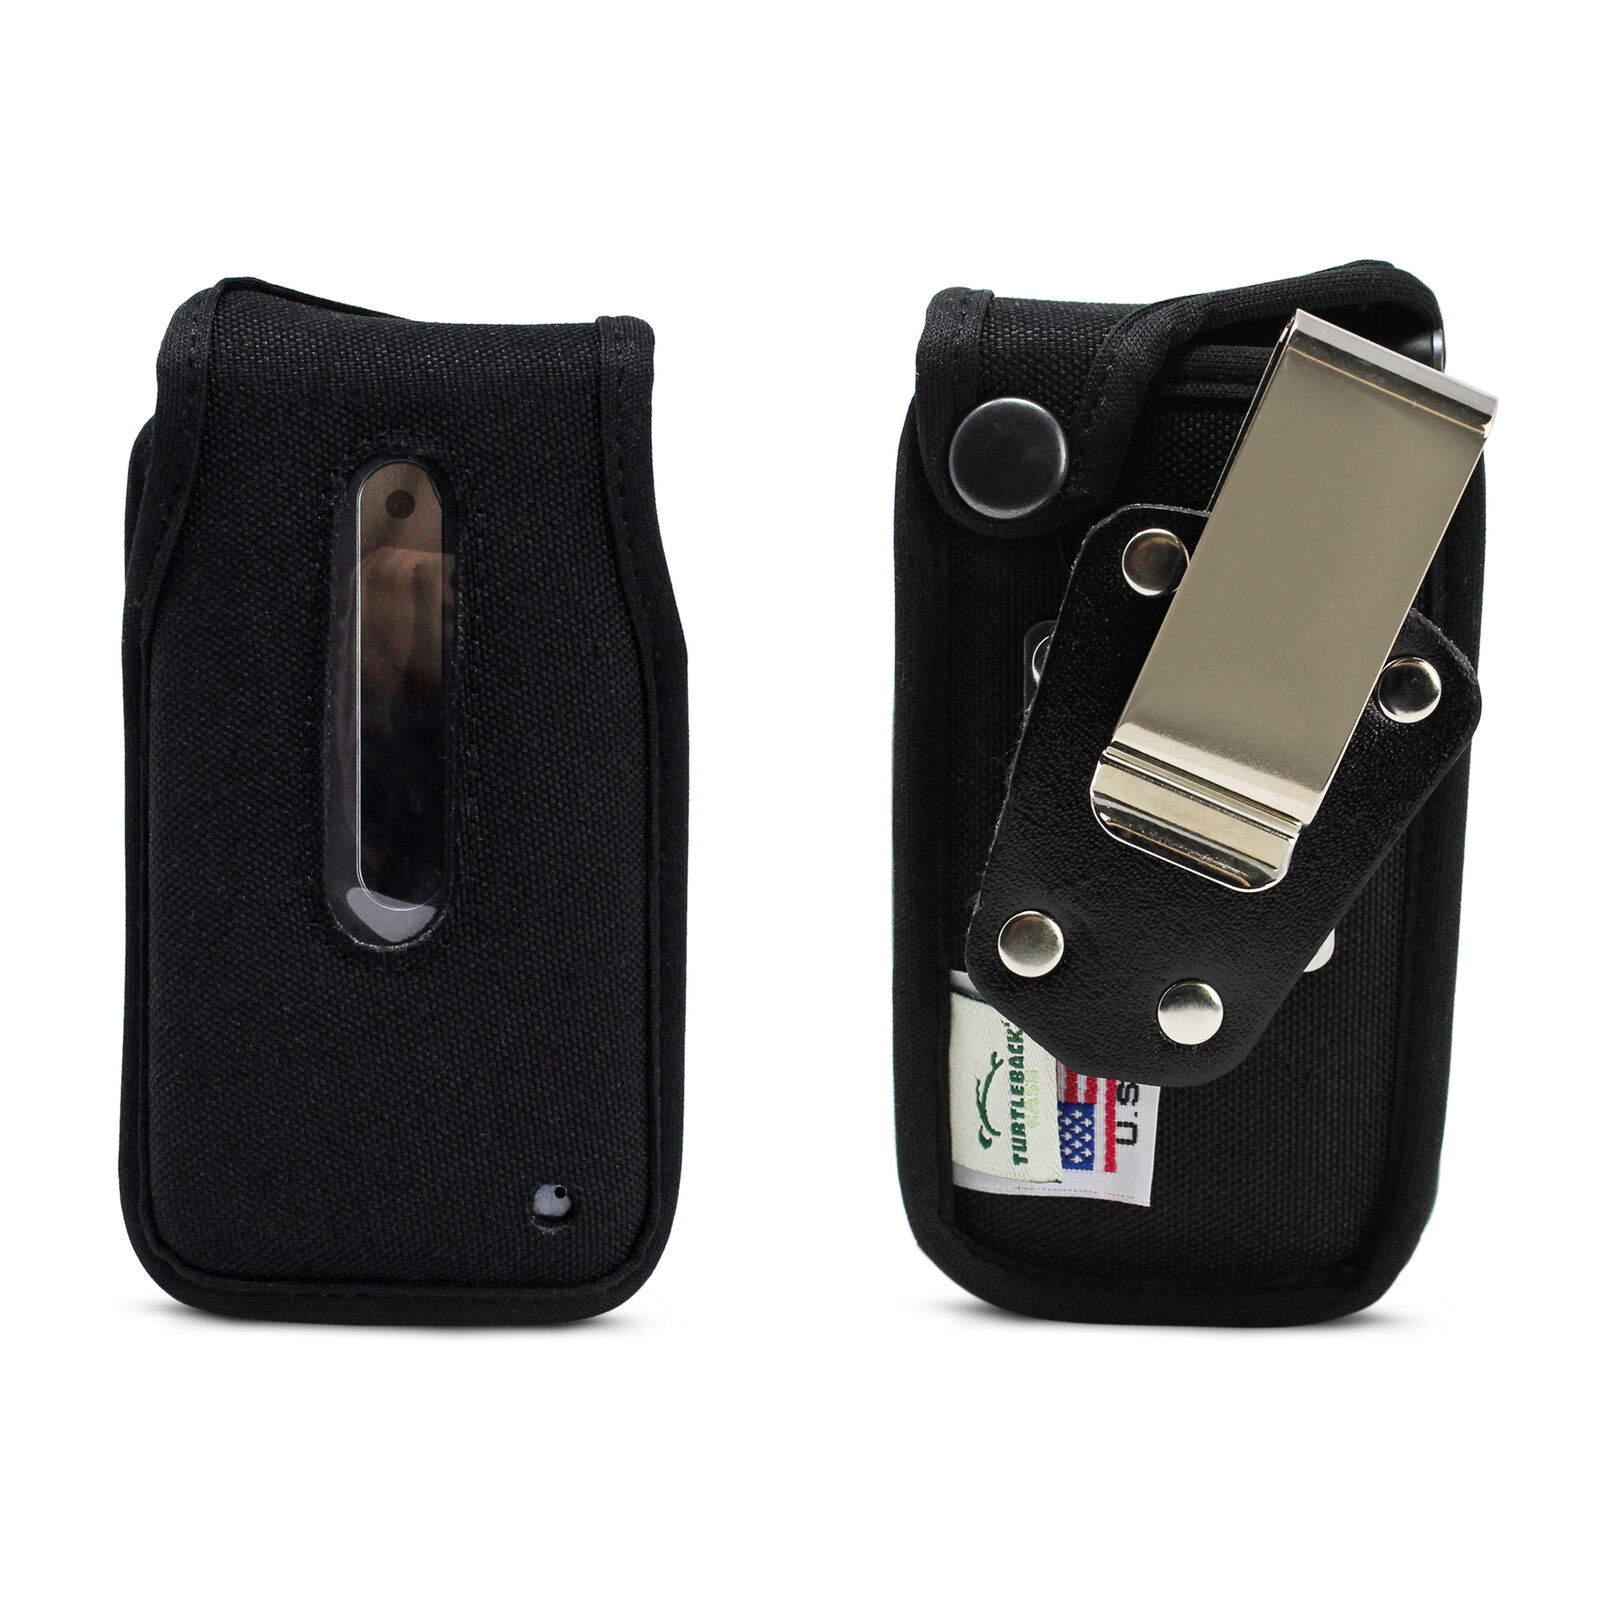 lg-wine-2-lte-fitted-case-heavy-duty-black-nylon-with-rotating-romovable-metal